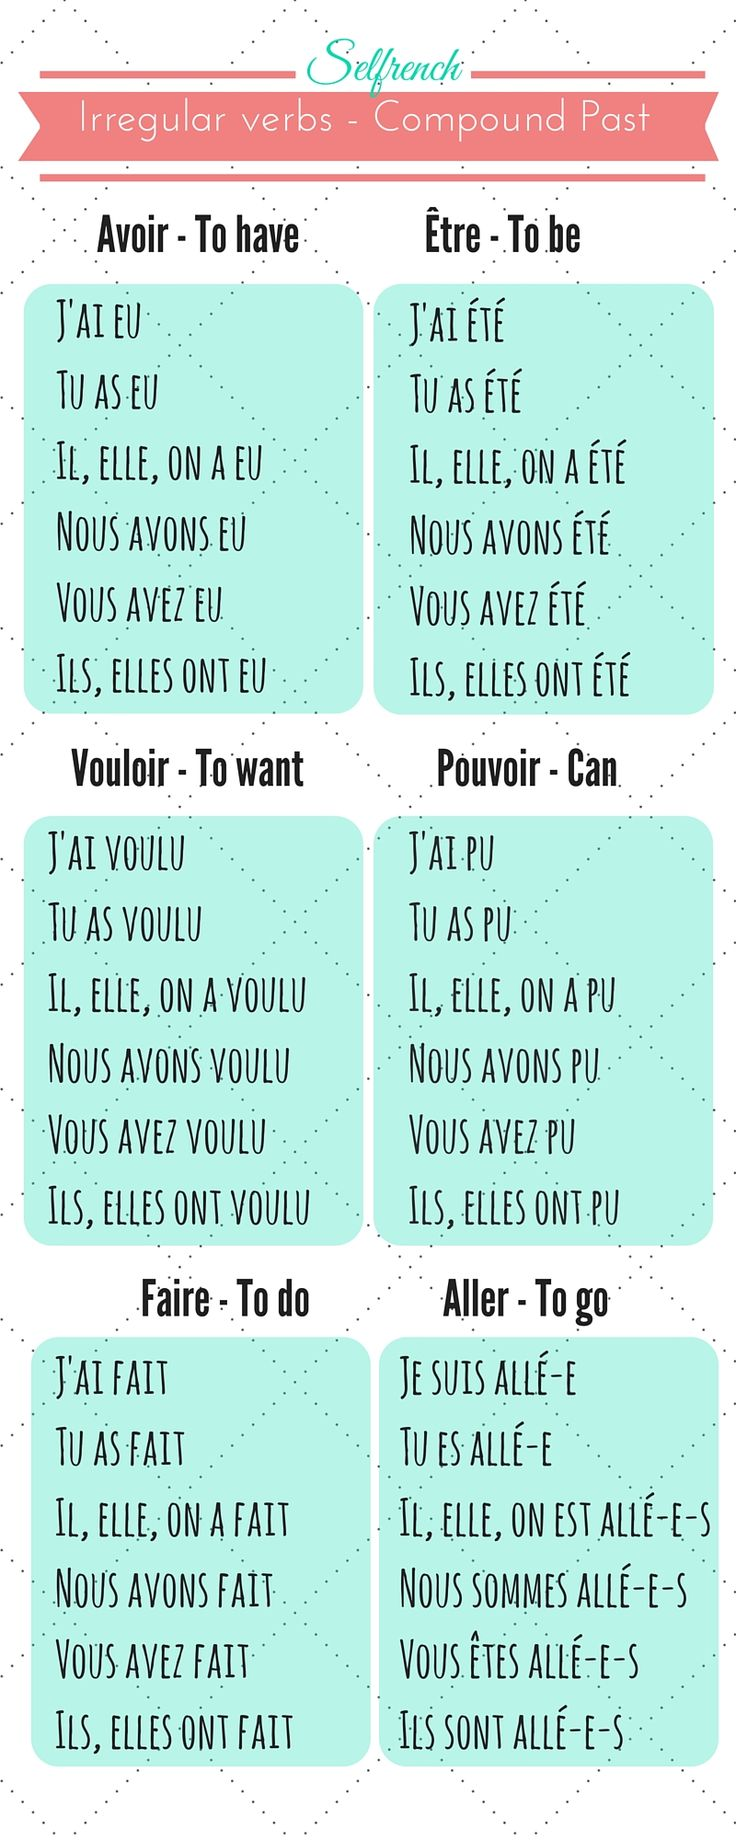 French conjugation compound past. Learn French online  Selfrench free programs and lessons